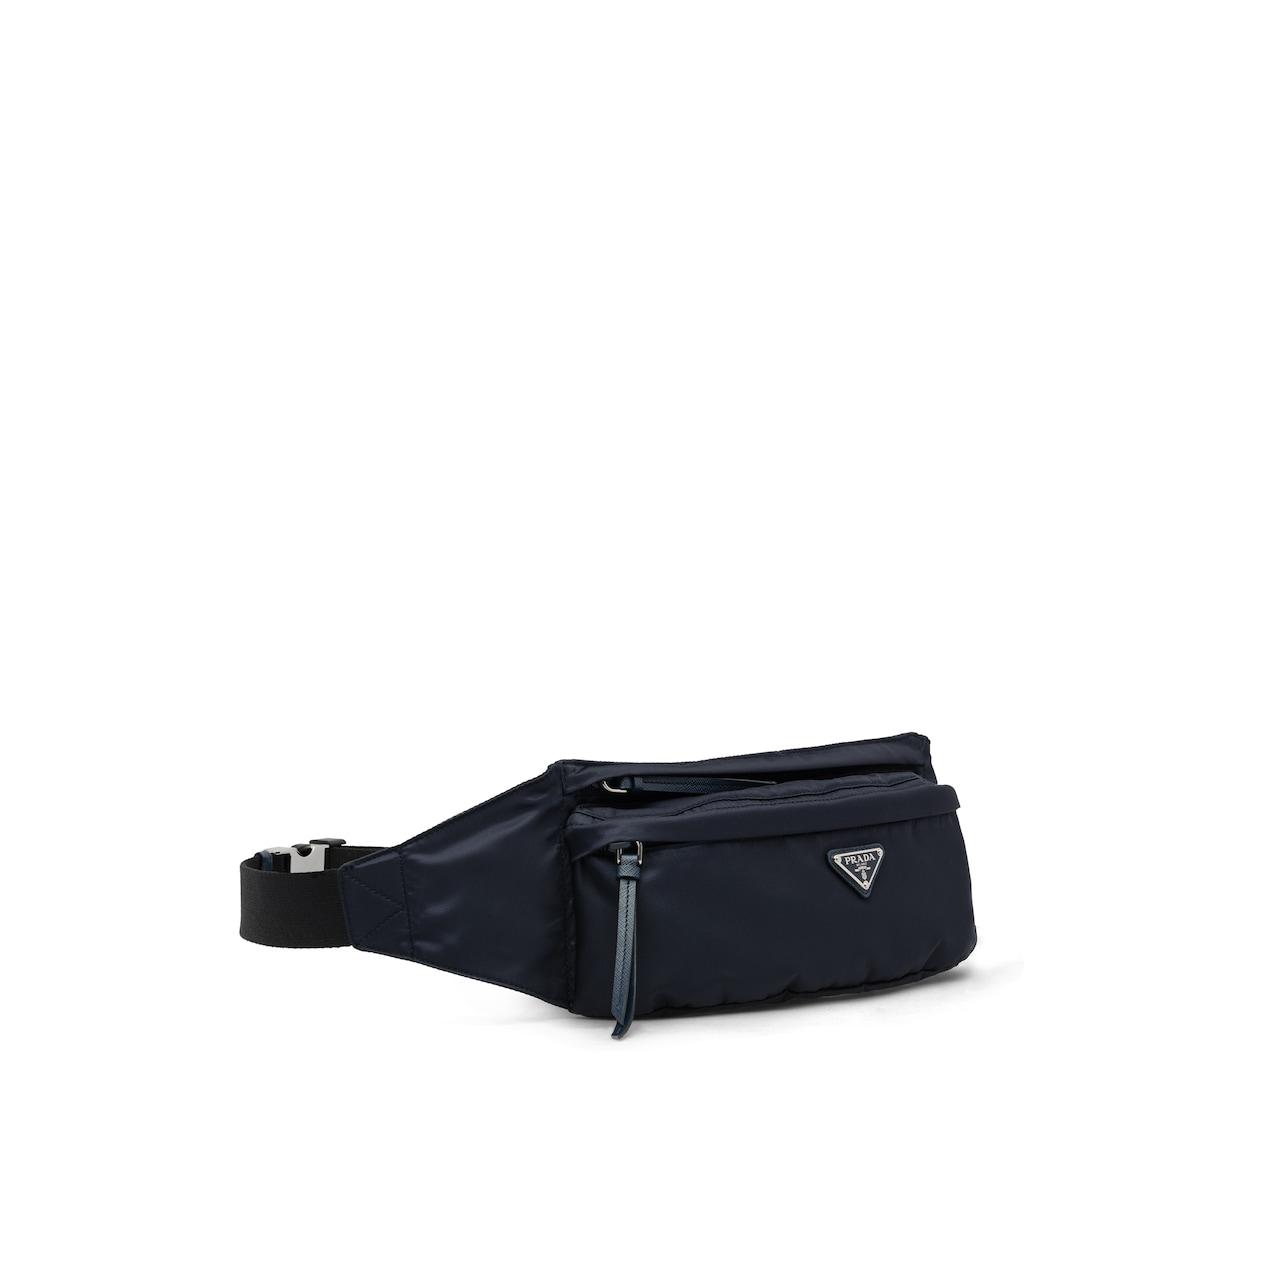 Prada Fabric and leather belt bag 3